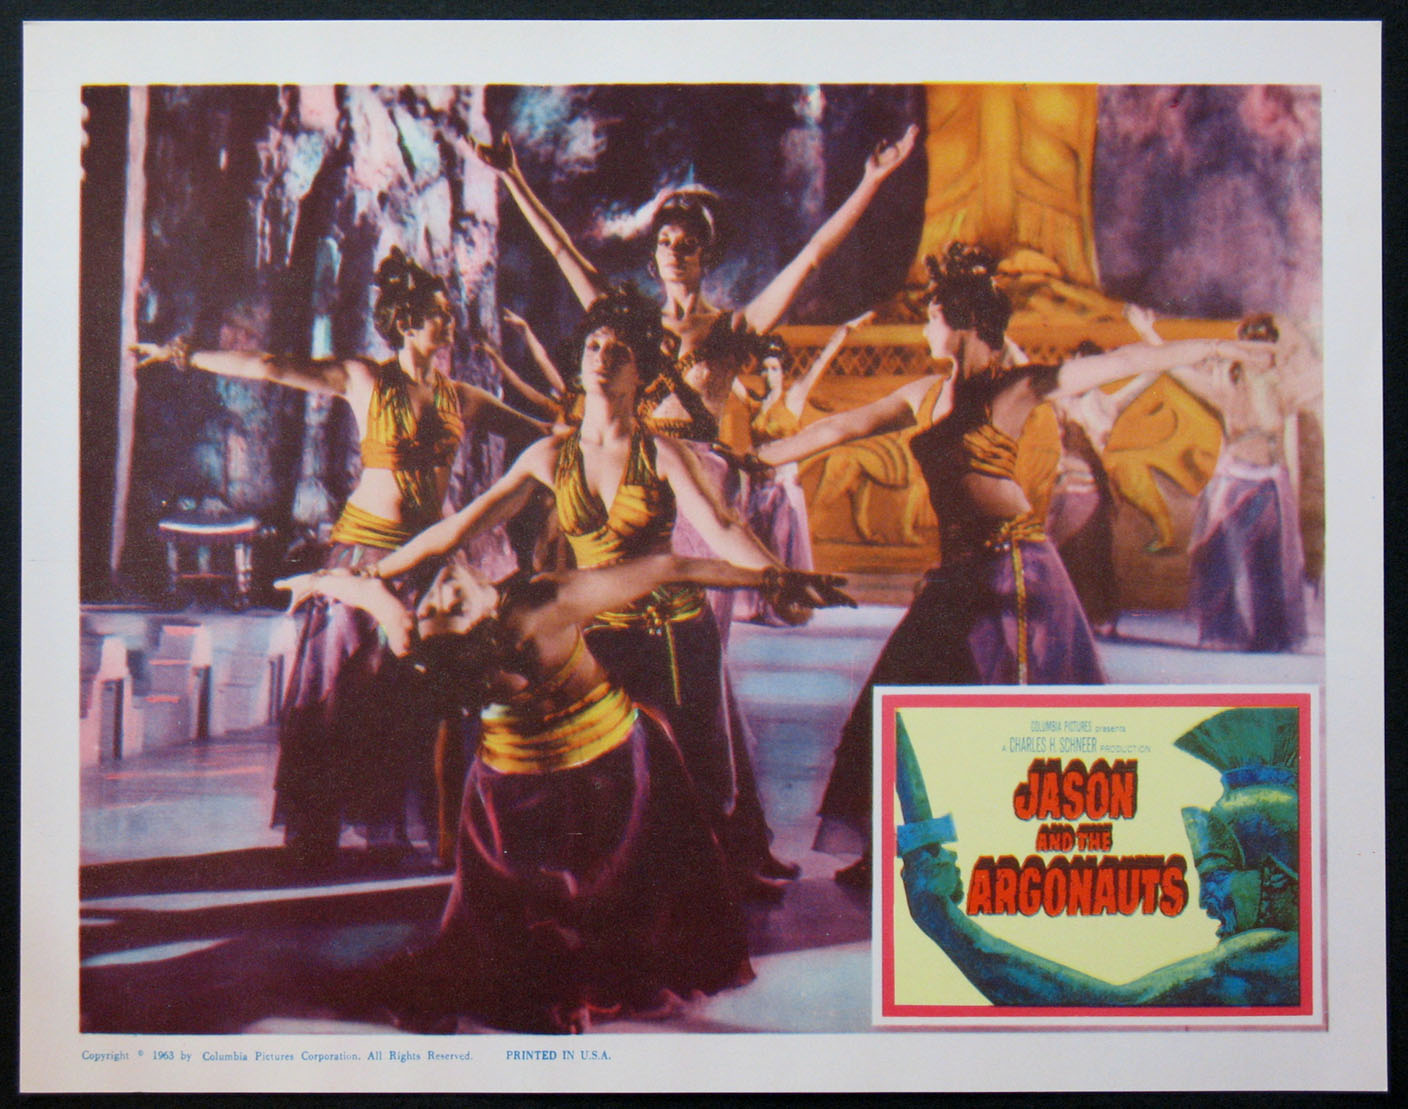 JASON AND THE ARGONAUTS @ FilmPosters.com